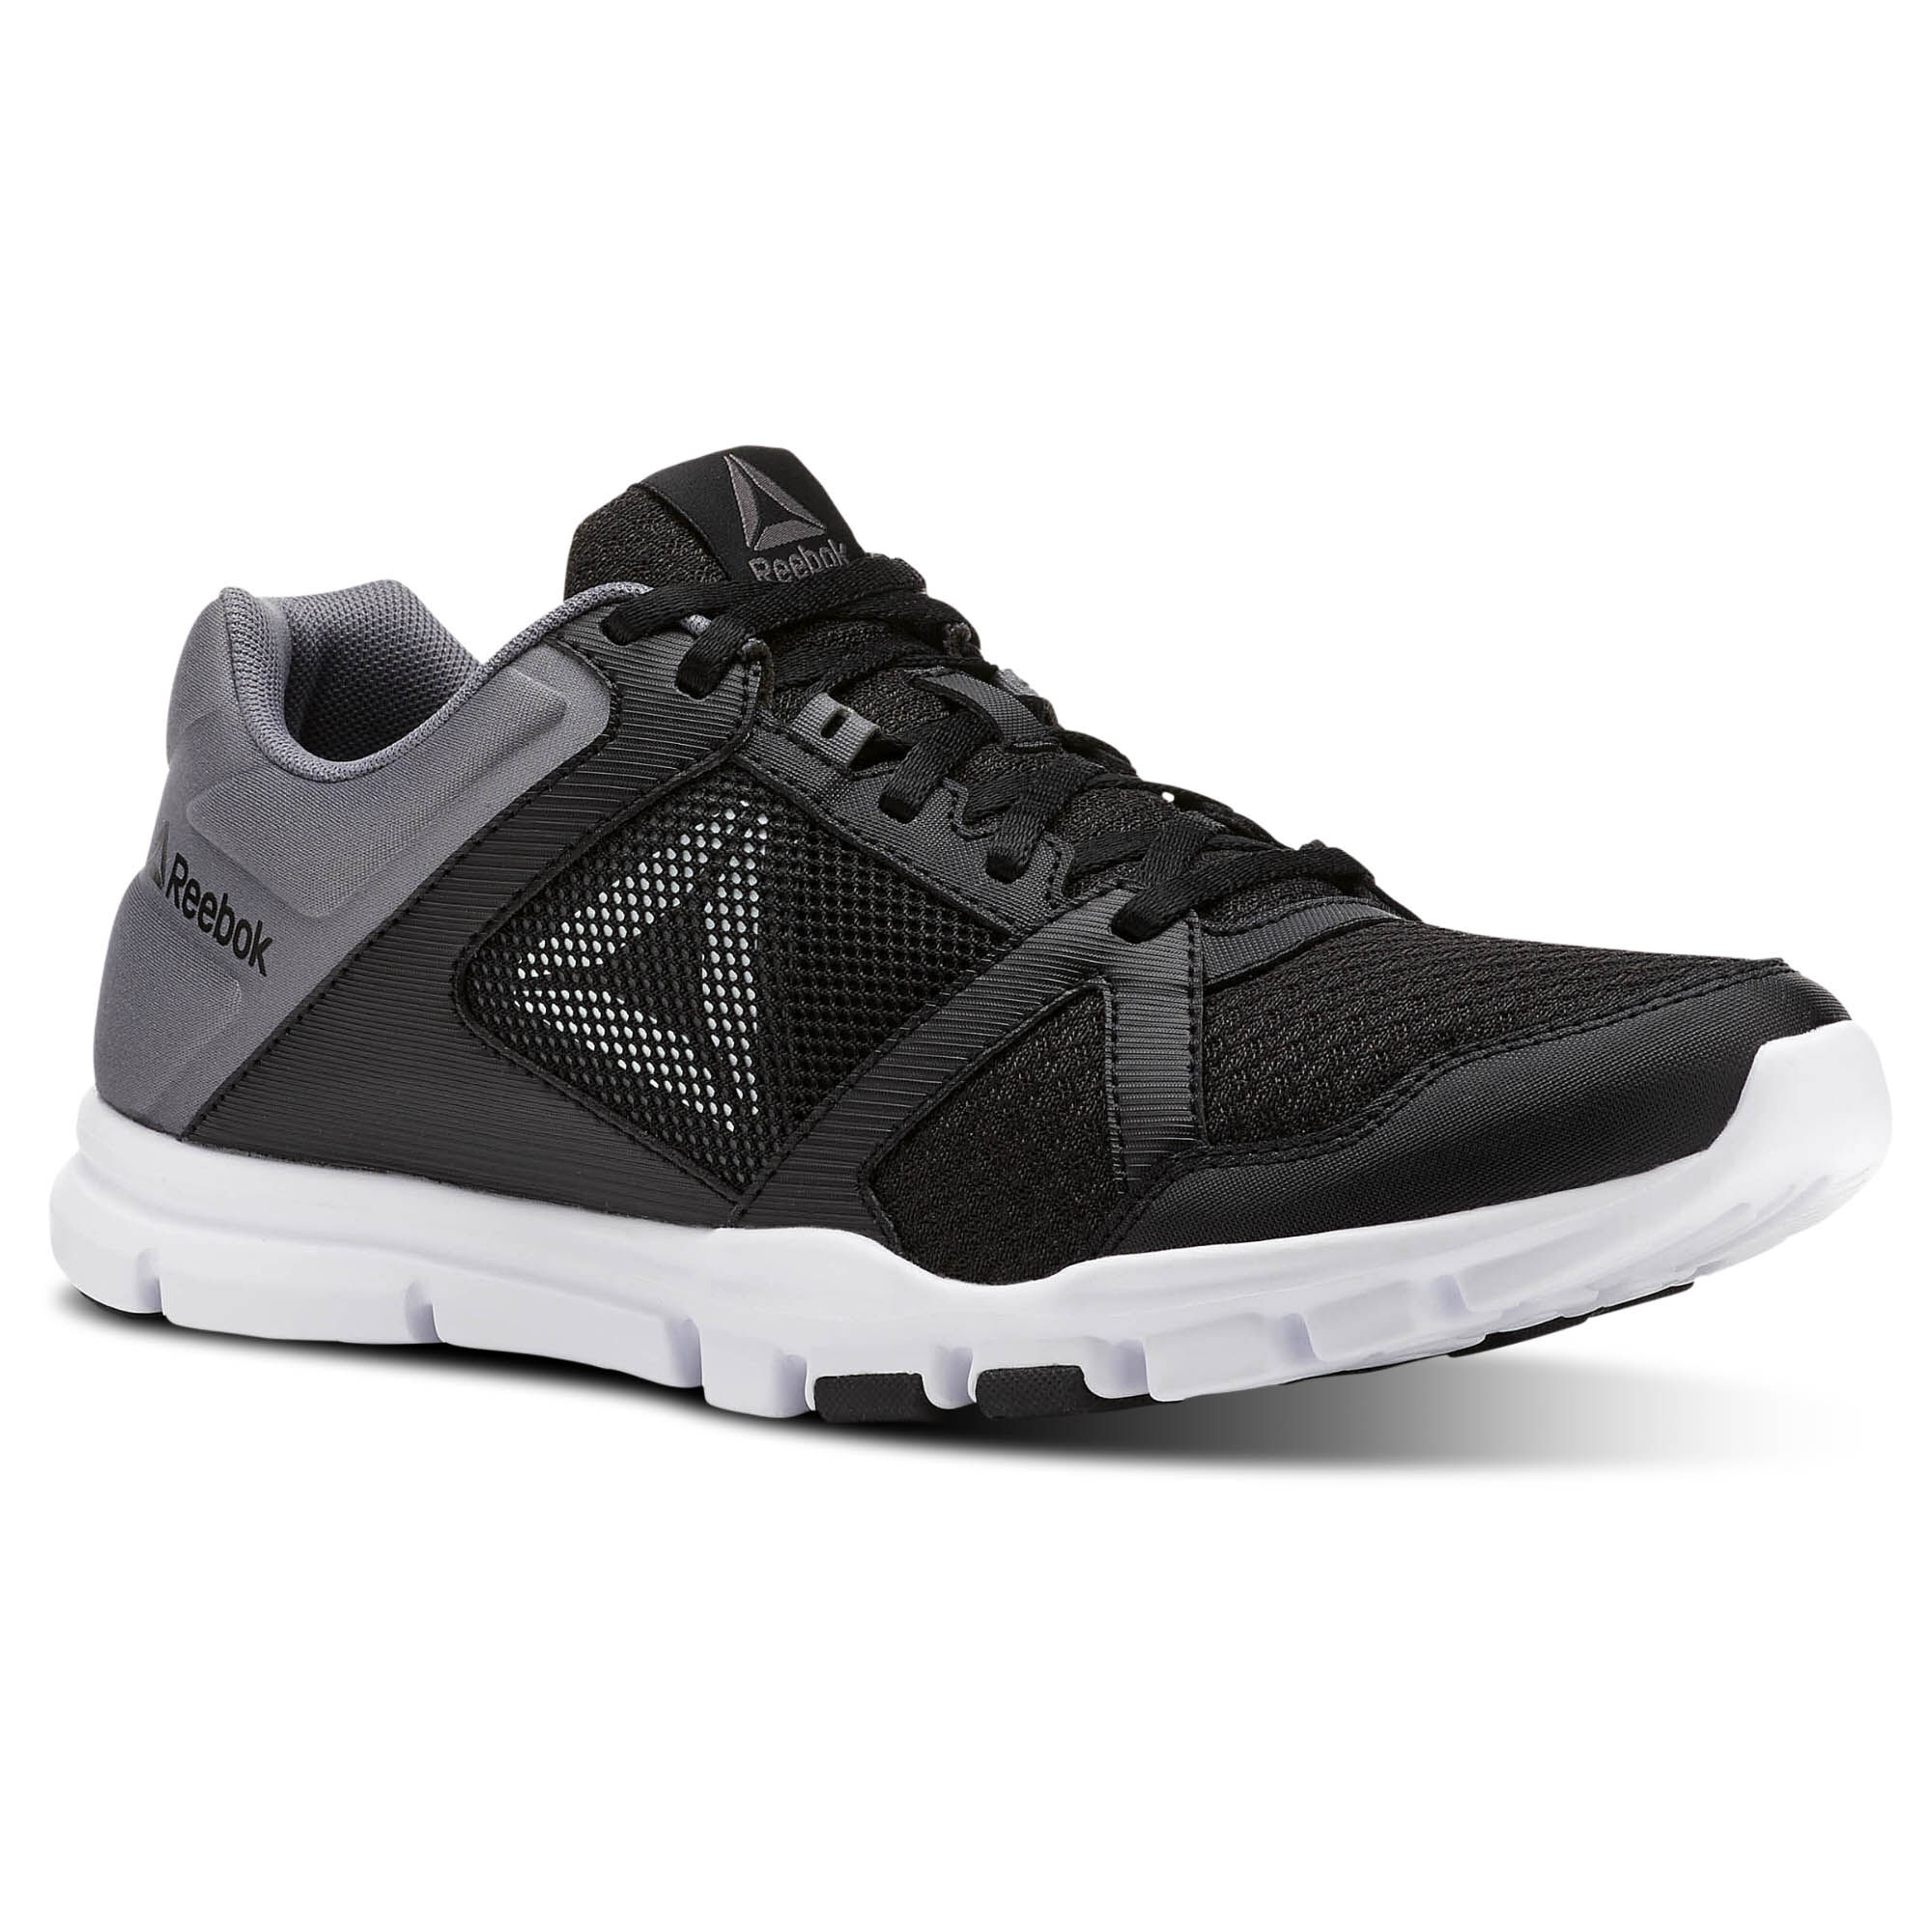 Reebok YOURFLEX TRAIN 10 MT - Sports shoes - black/shark/white 13gMiDCYI